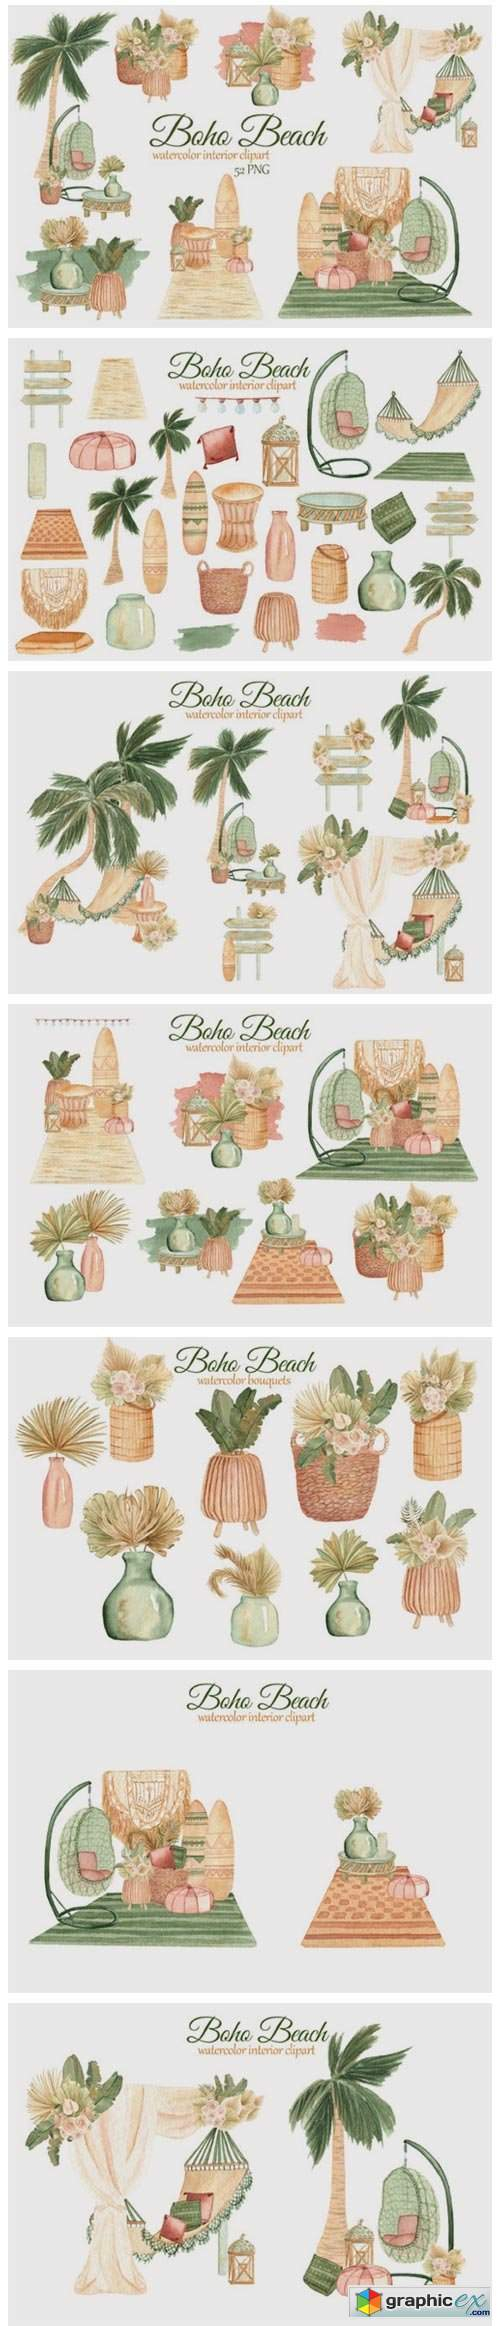 Boho Beach House Clipart